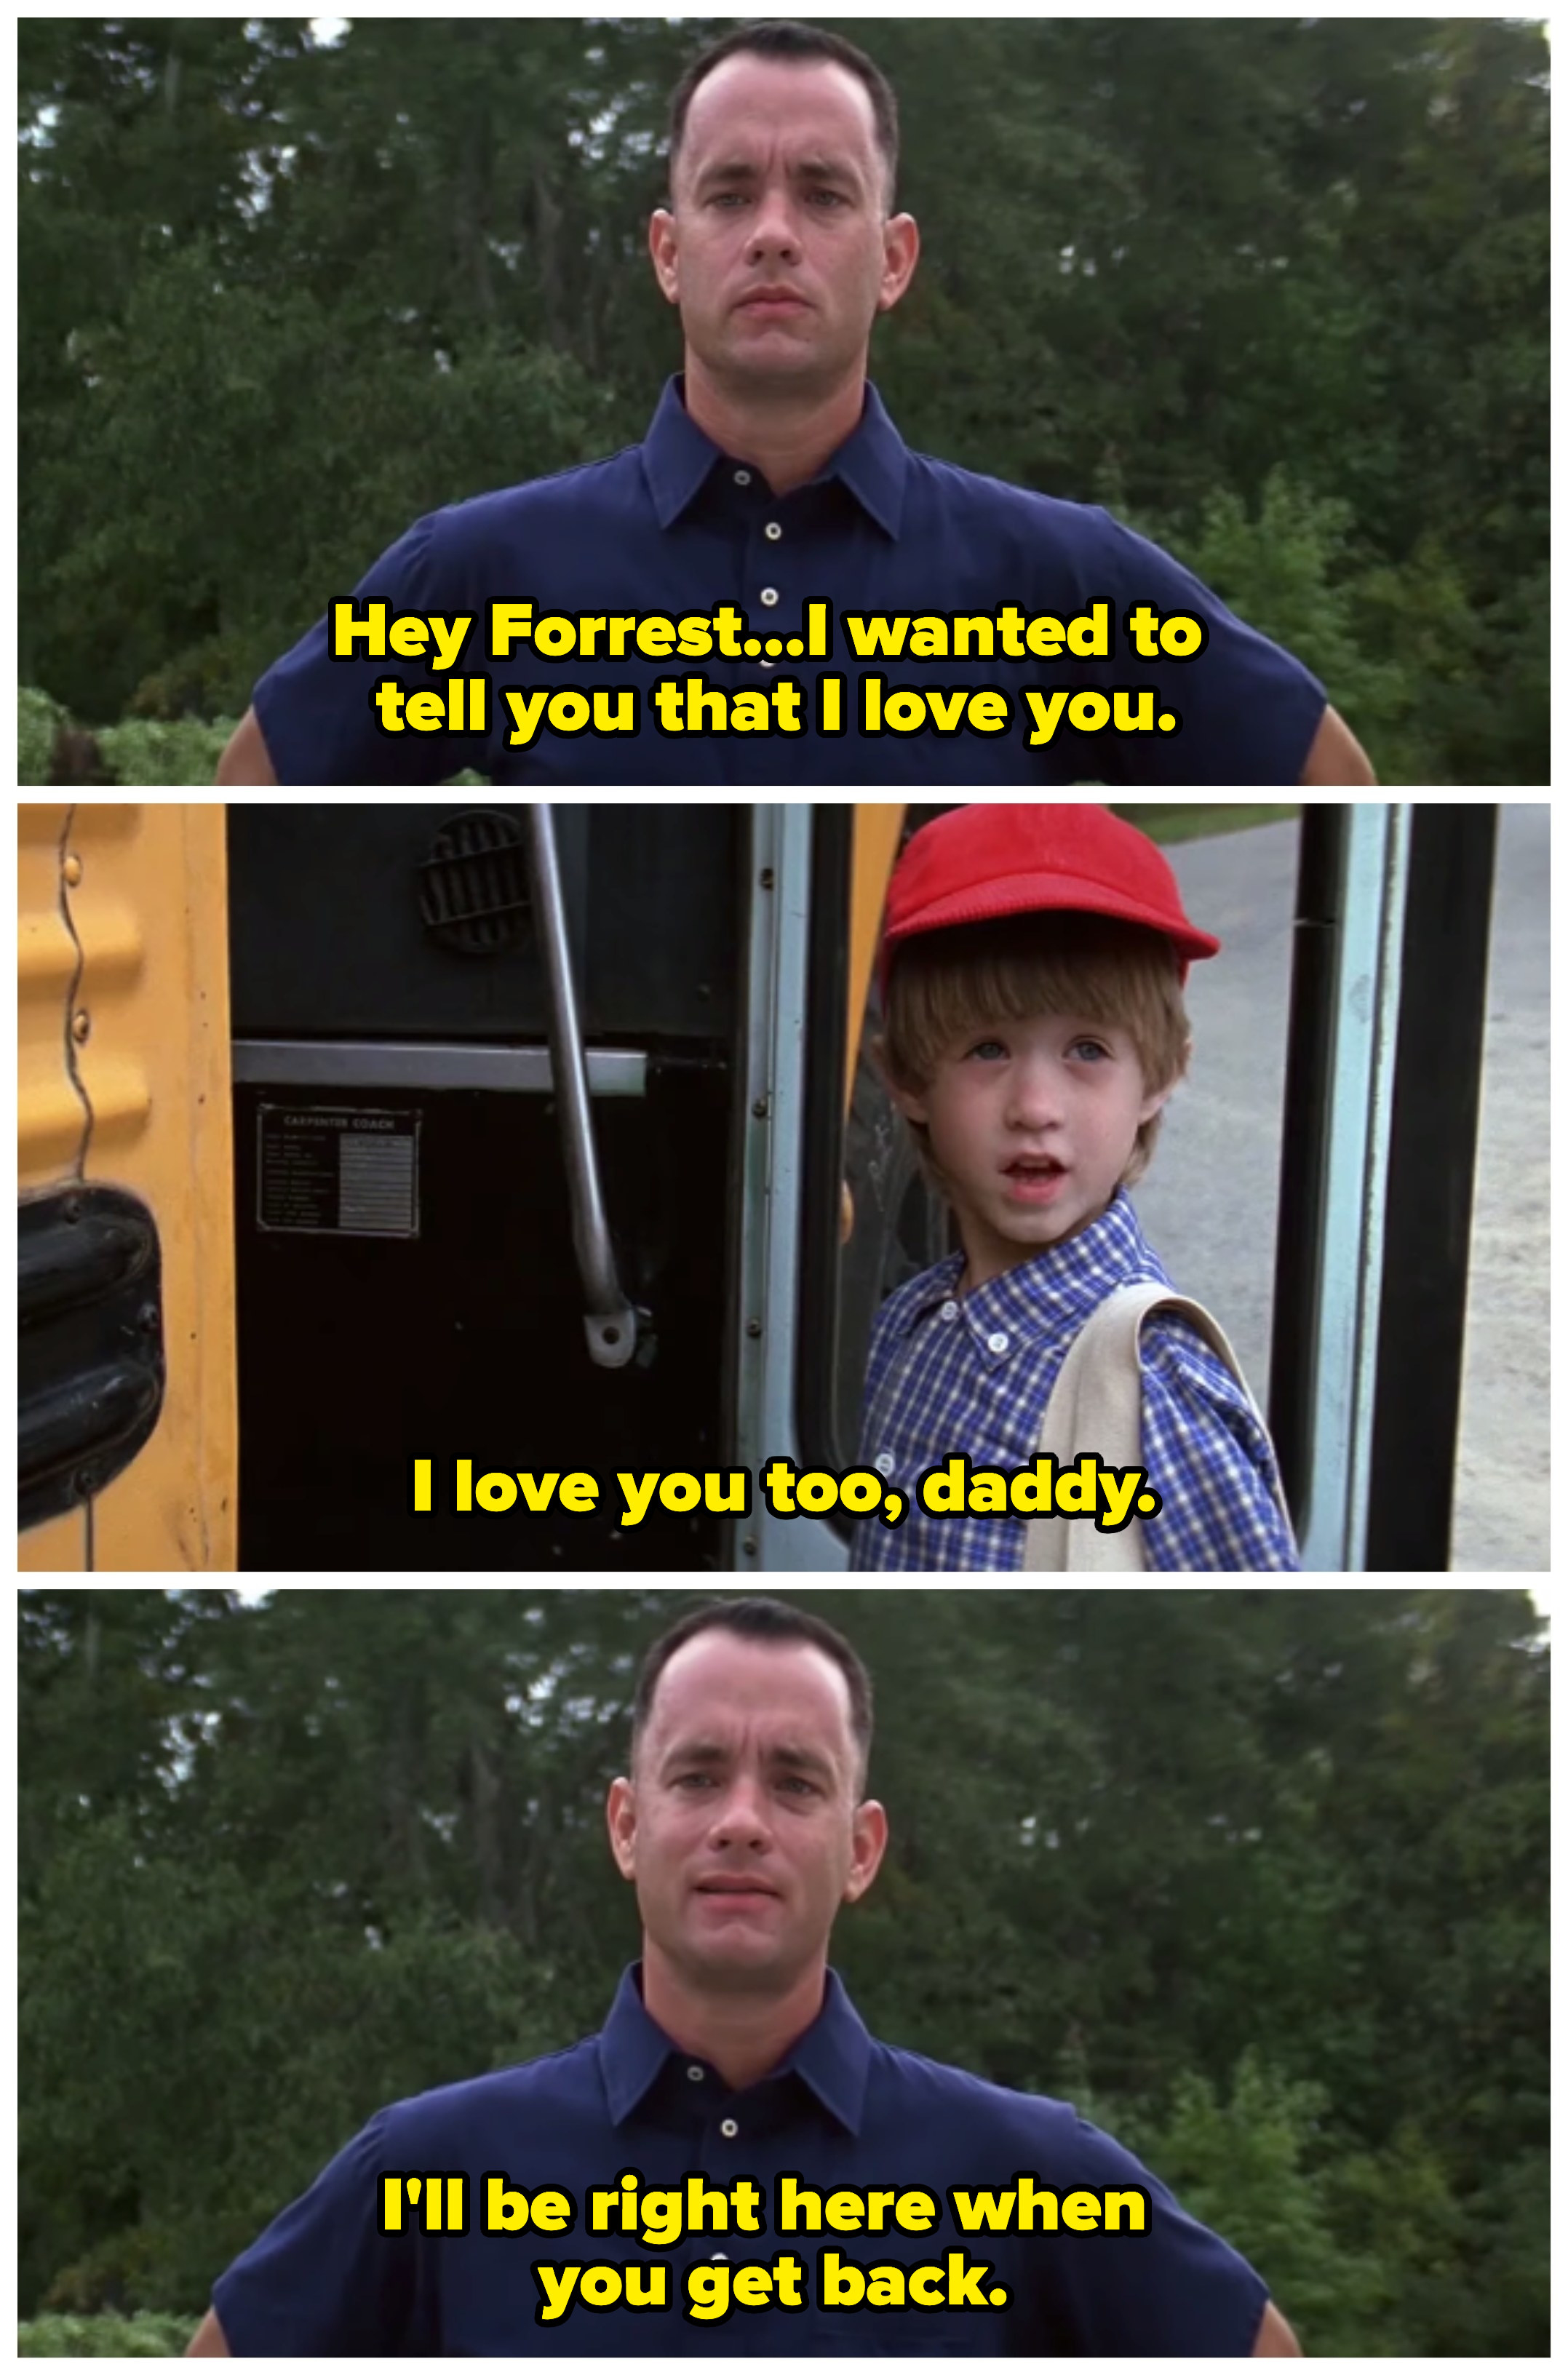 Forrest telling his son that he loves him as he heads towards the school bus